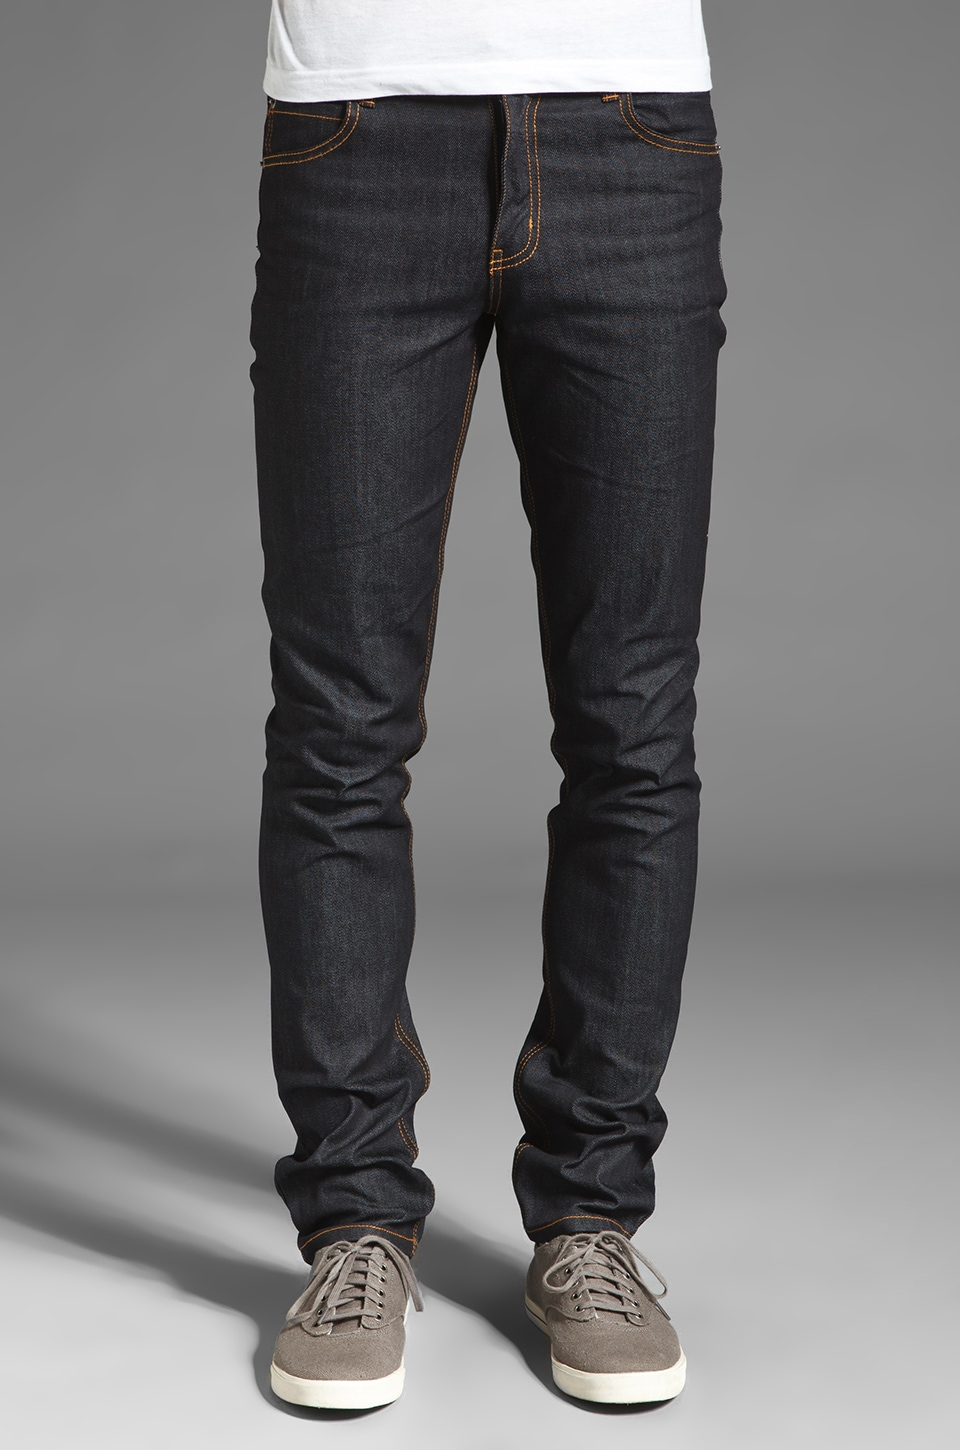 Classic, stylish dark wash jeans look good dressed up or worn casual, night or day. Browse our complete collection of dark wash jeans for men at Levi's®.